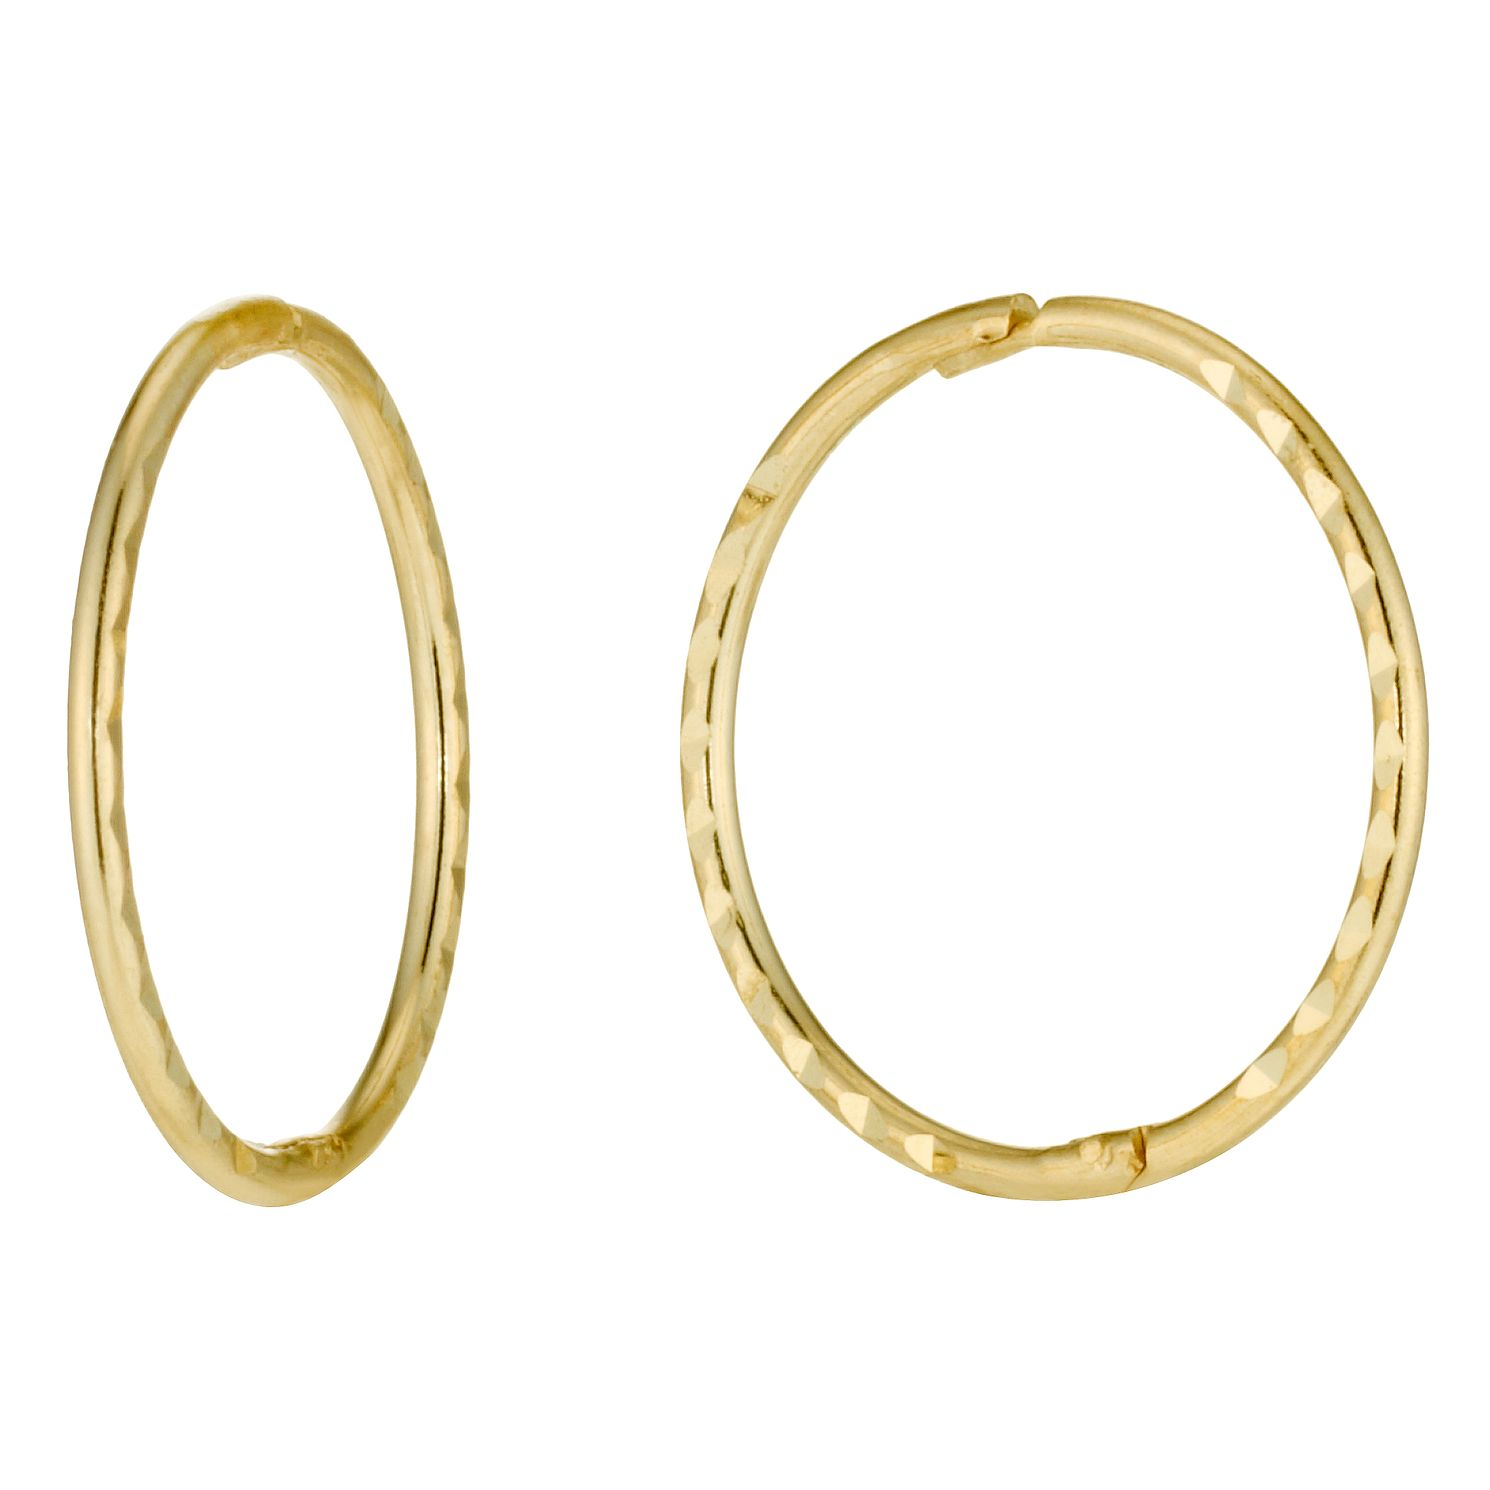 crystal categories in jewelry hoop circle rose earrings lg kendra scott lety gold